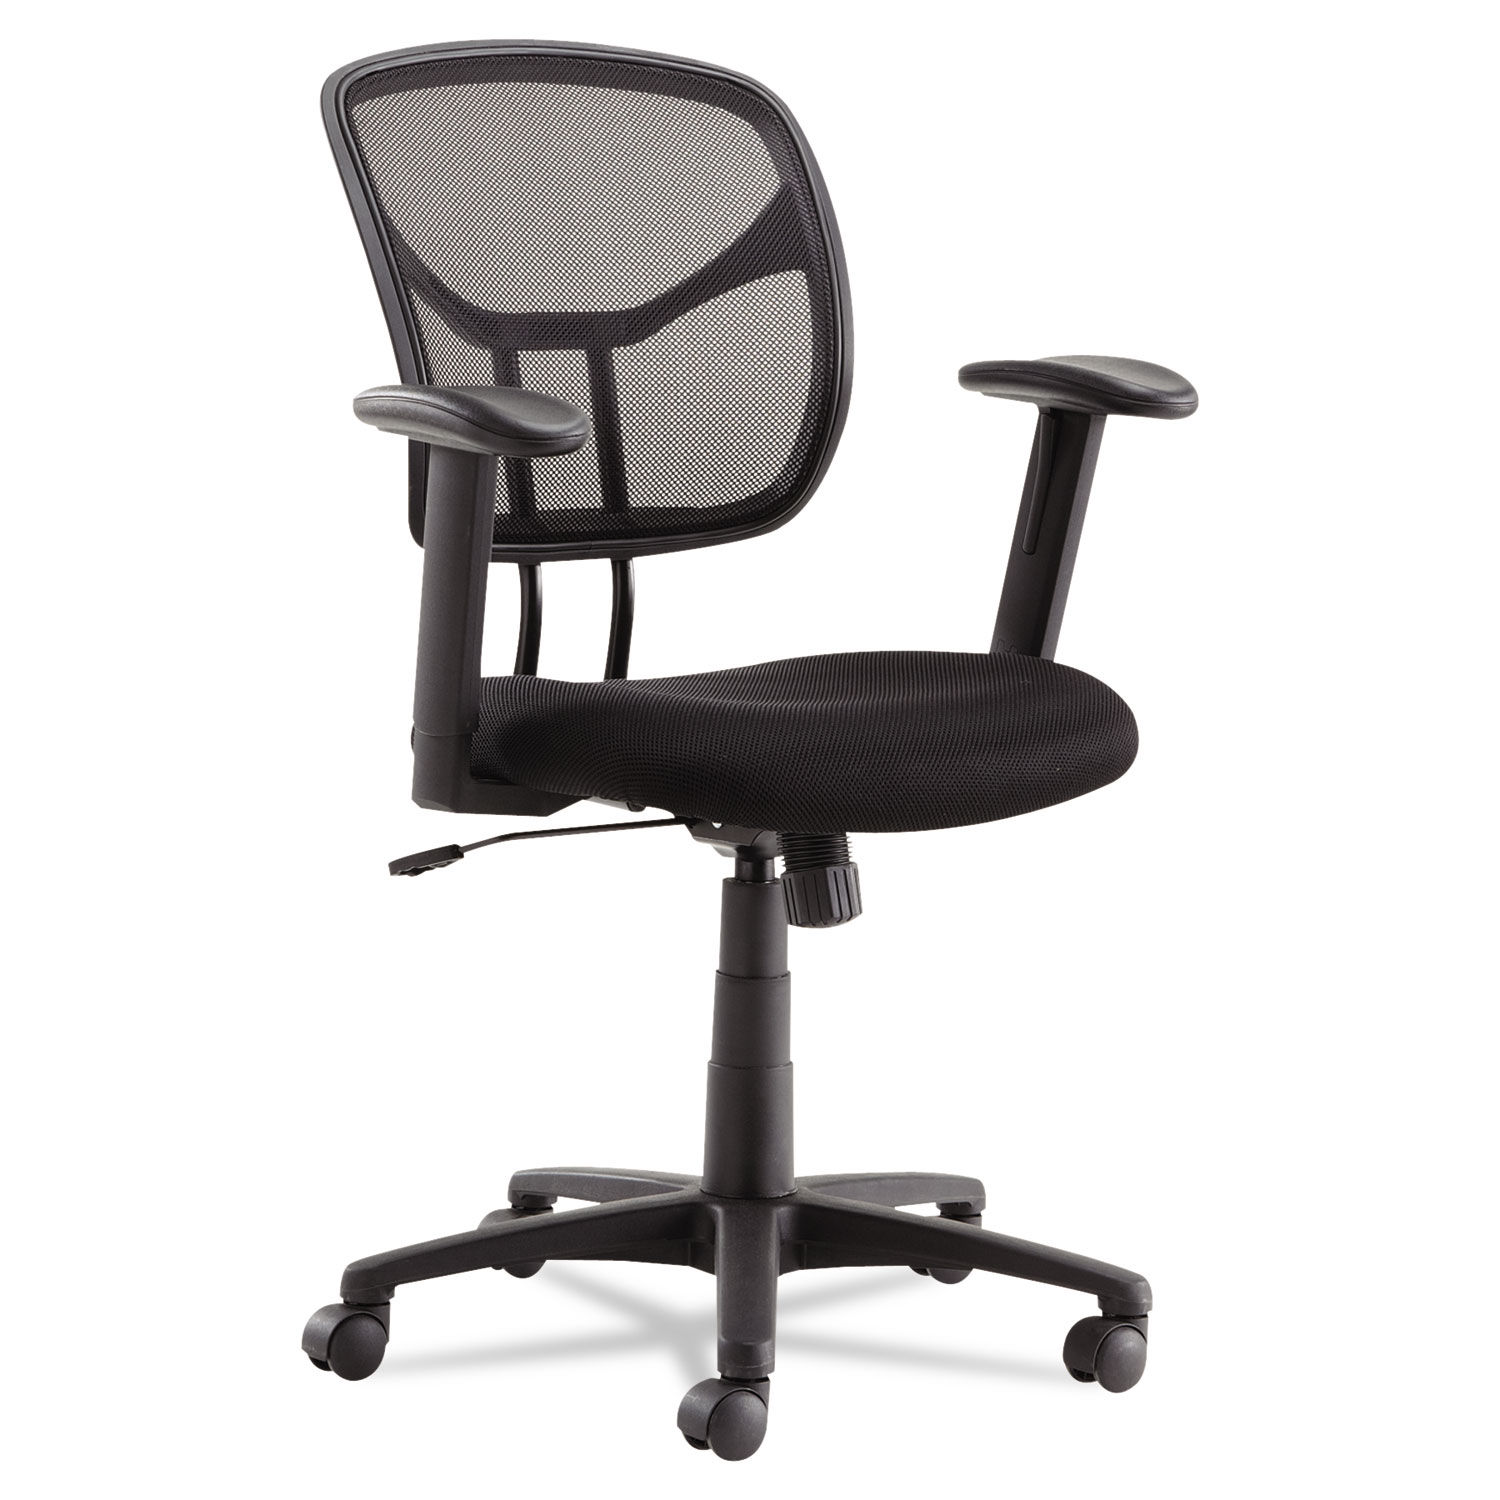 Miraculous Swivel Tilt Mesh Task Chair With Adjustable Arms Supports Up To 250 Lbs Black Seat Black Back Black Base Home Interior And Landscaping Transignezvosmurscom